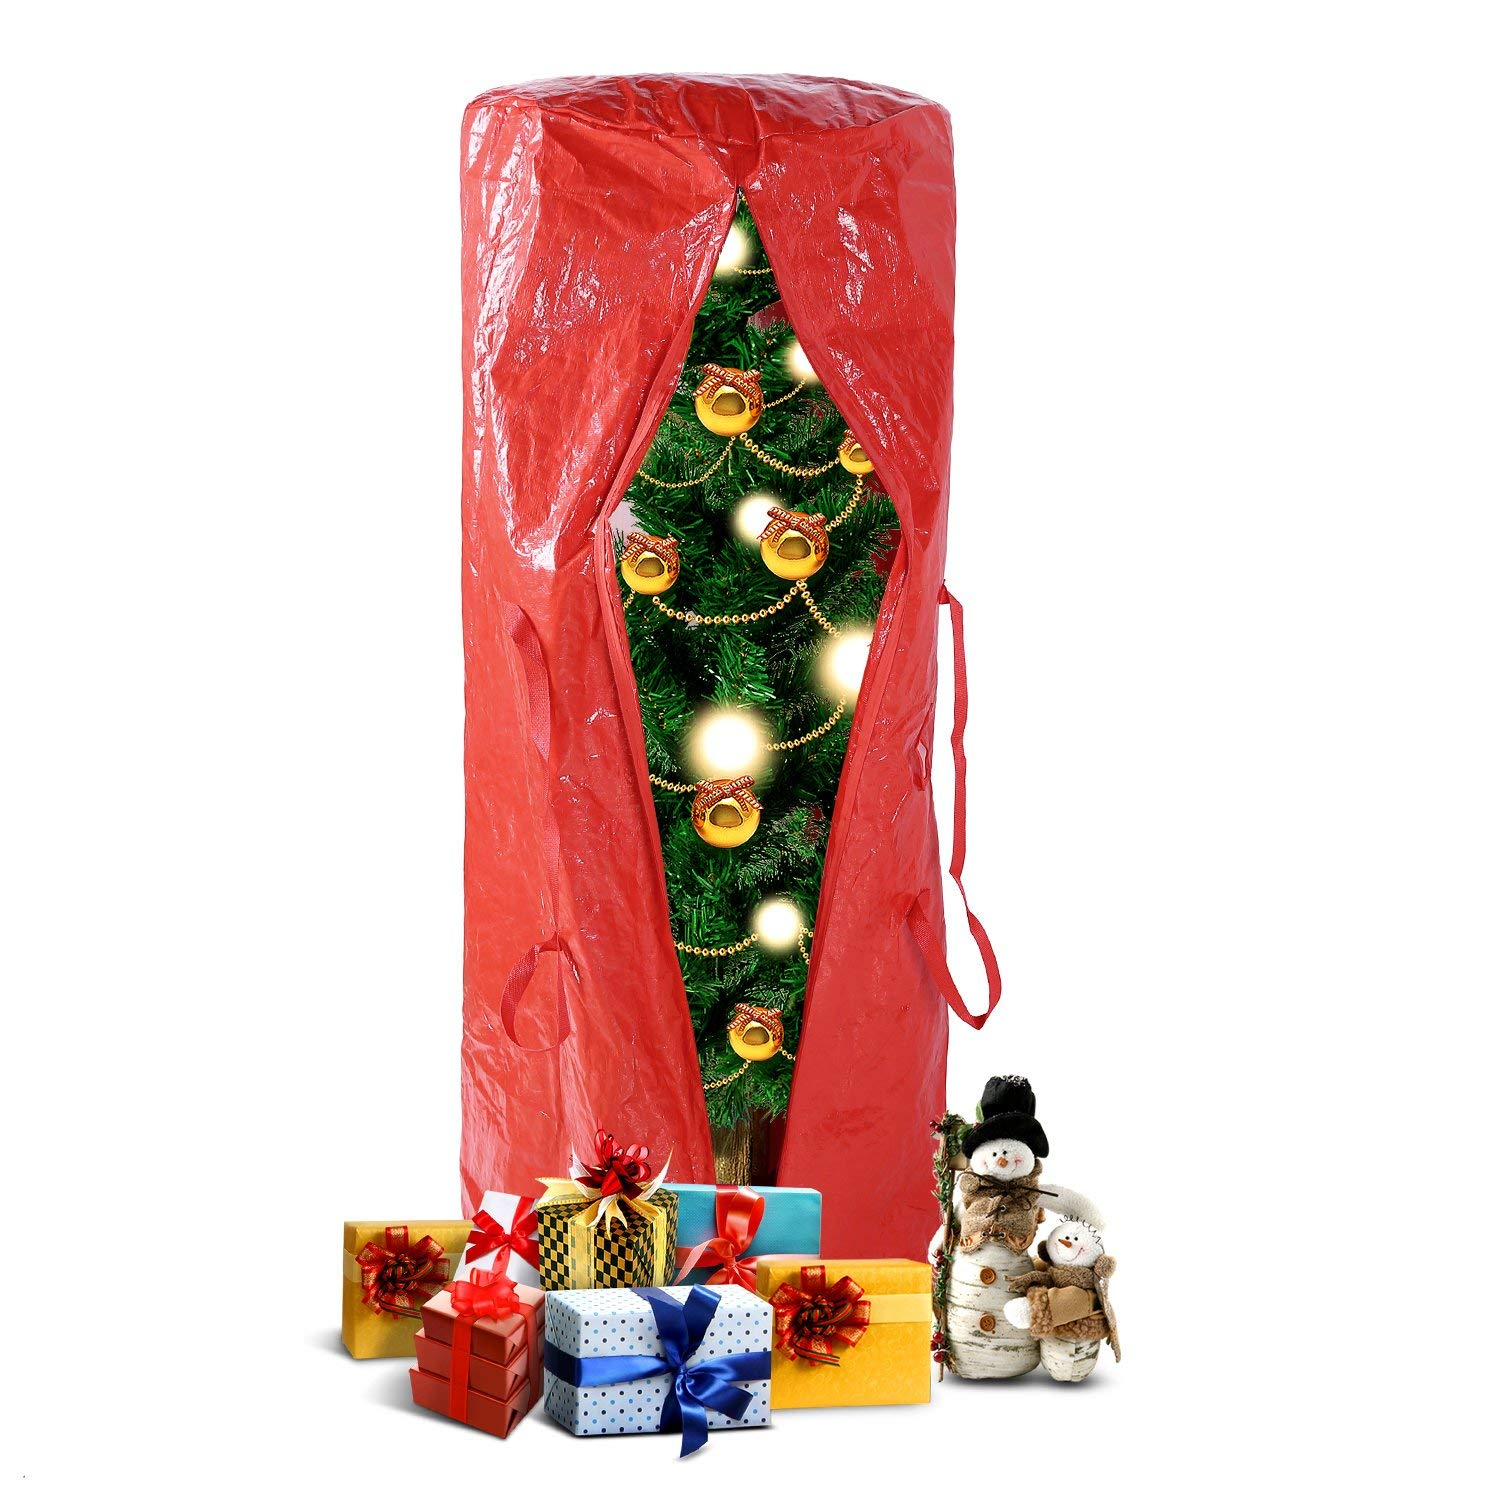 Ohuhu Christmas Tree Storage Bag For 5 Foot Tree or 9 Foot Disassembled Christmas Tree, Red (5.2' x 2.1' x 2.1')